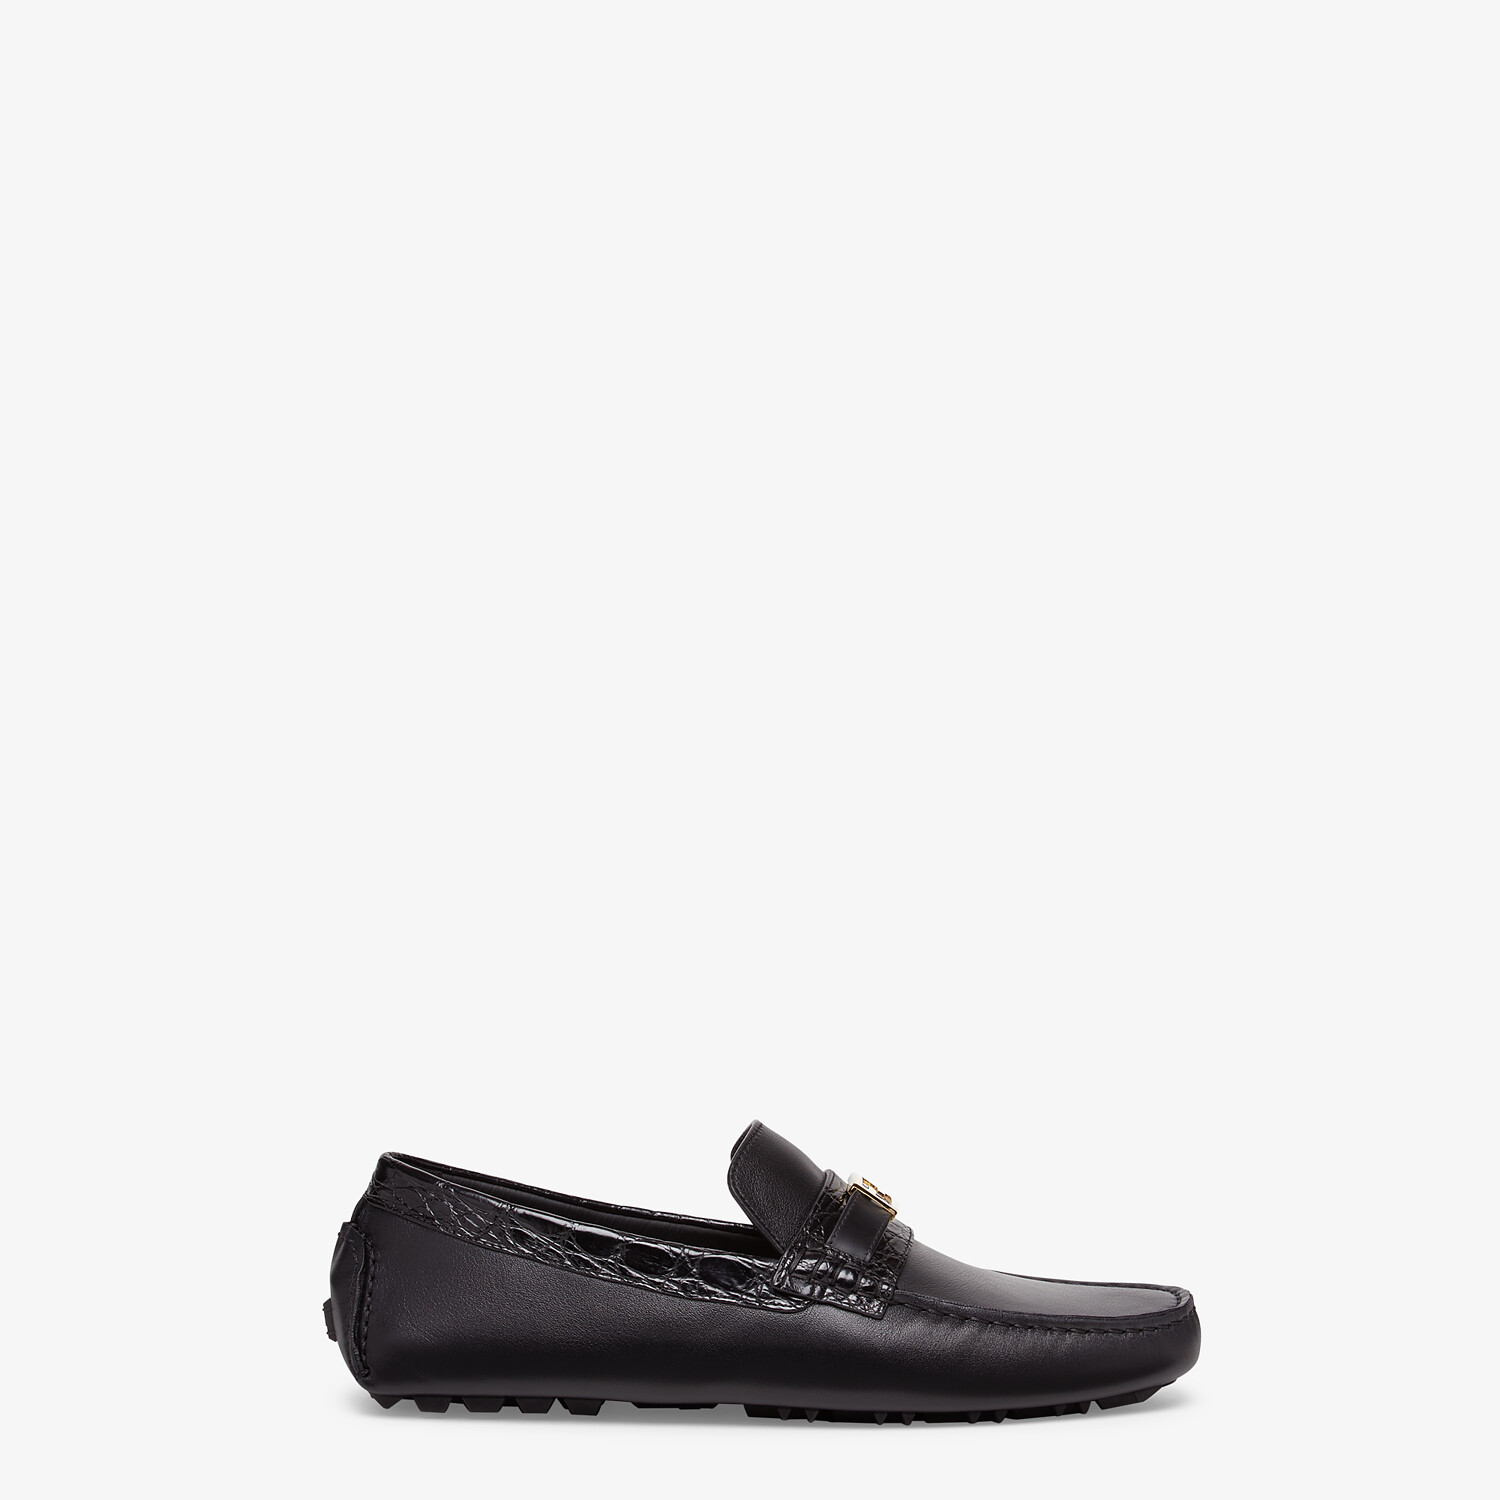 FENDI LOAFERS - Black leather and caiman drivers. - view 1 detail